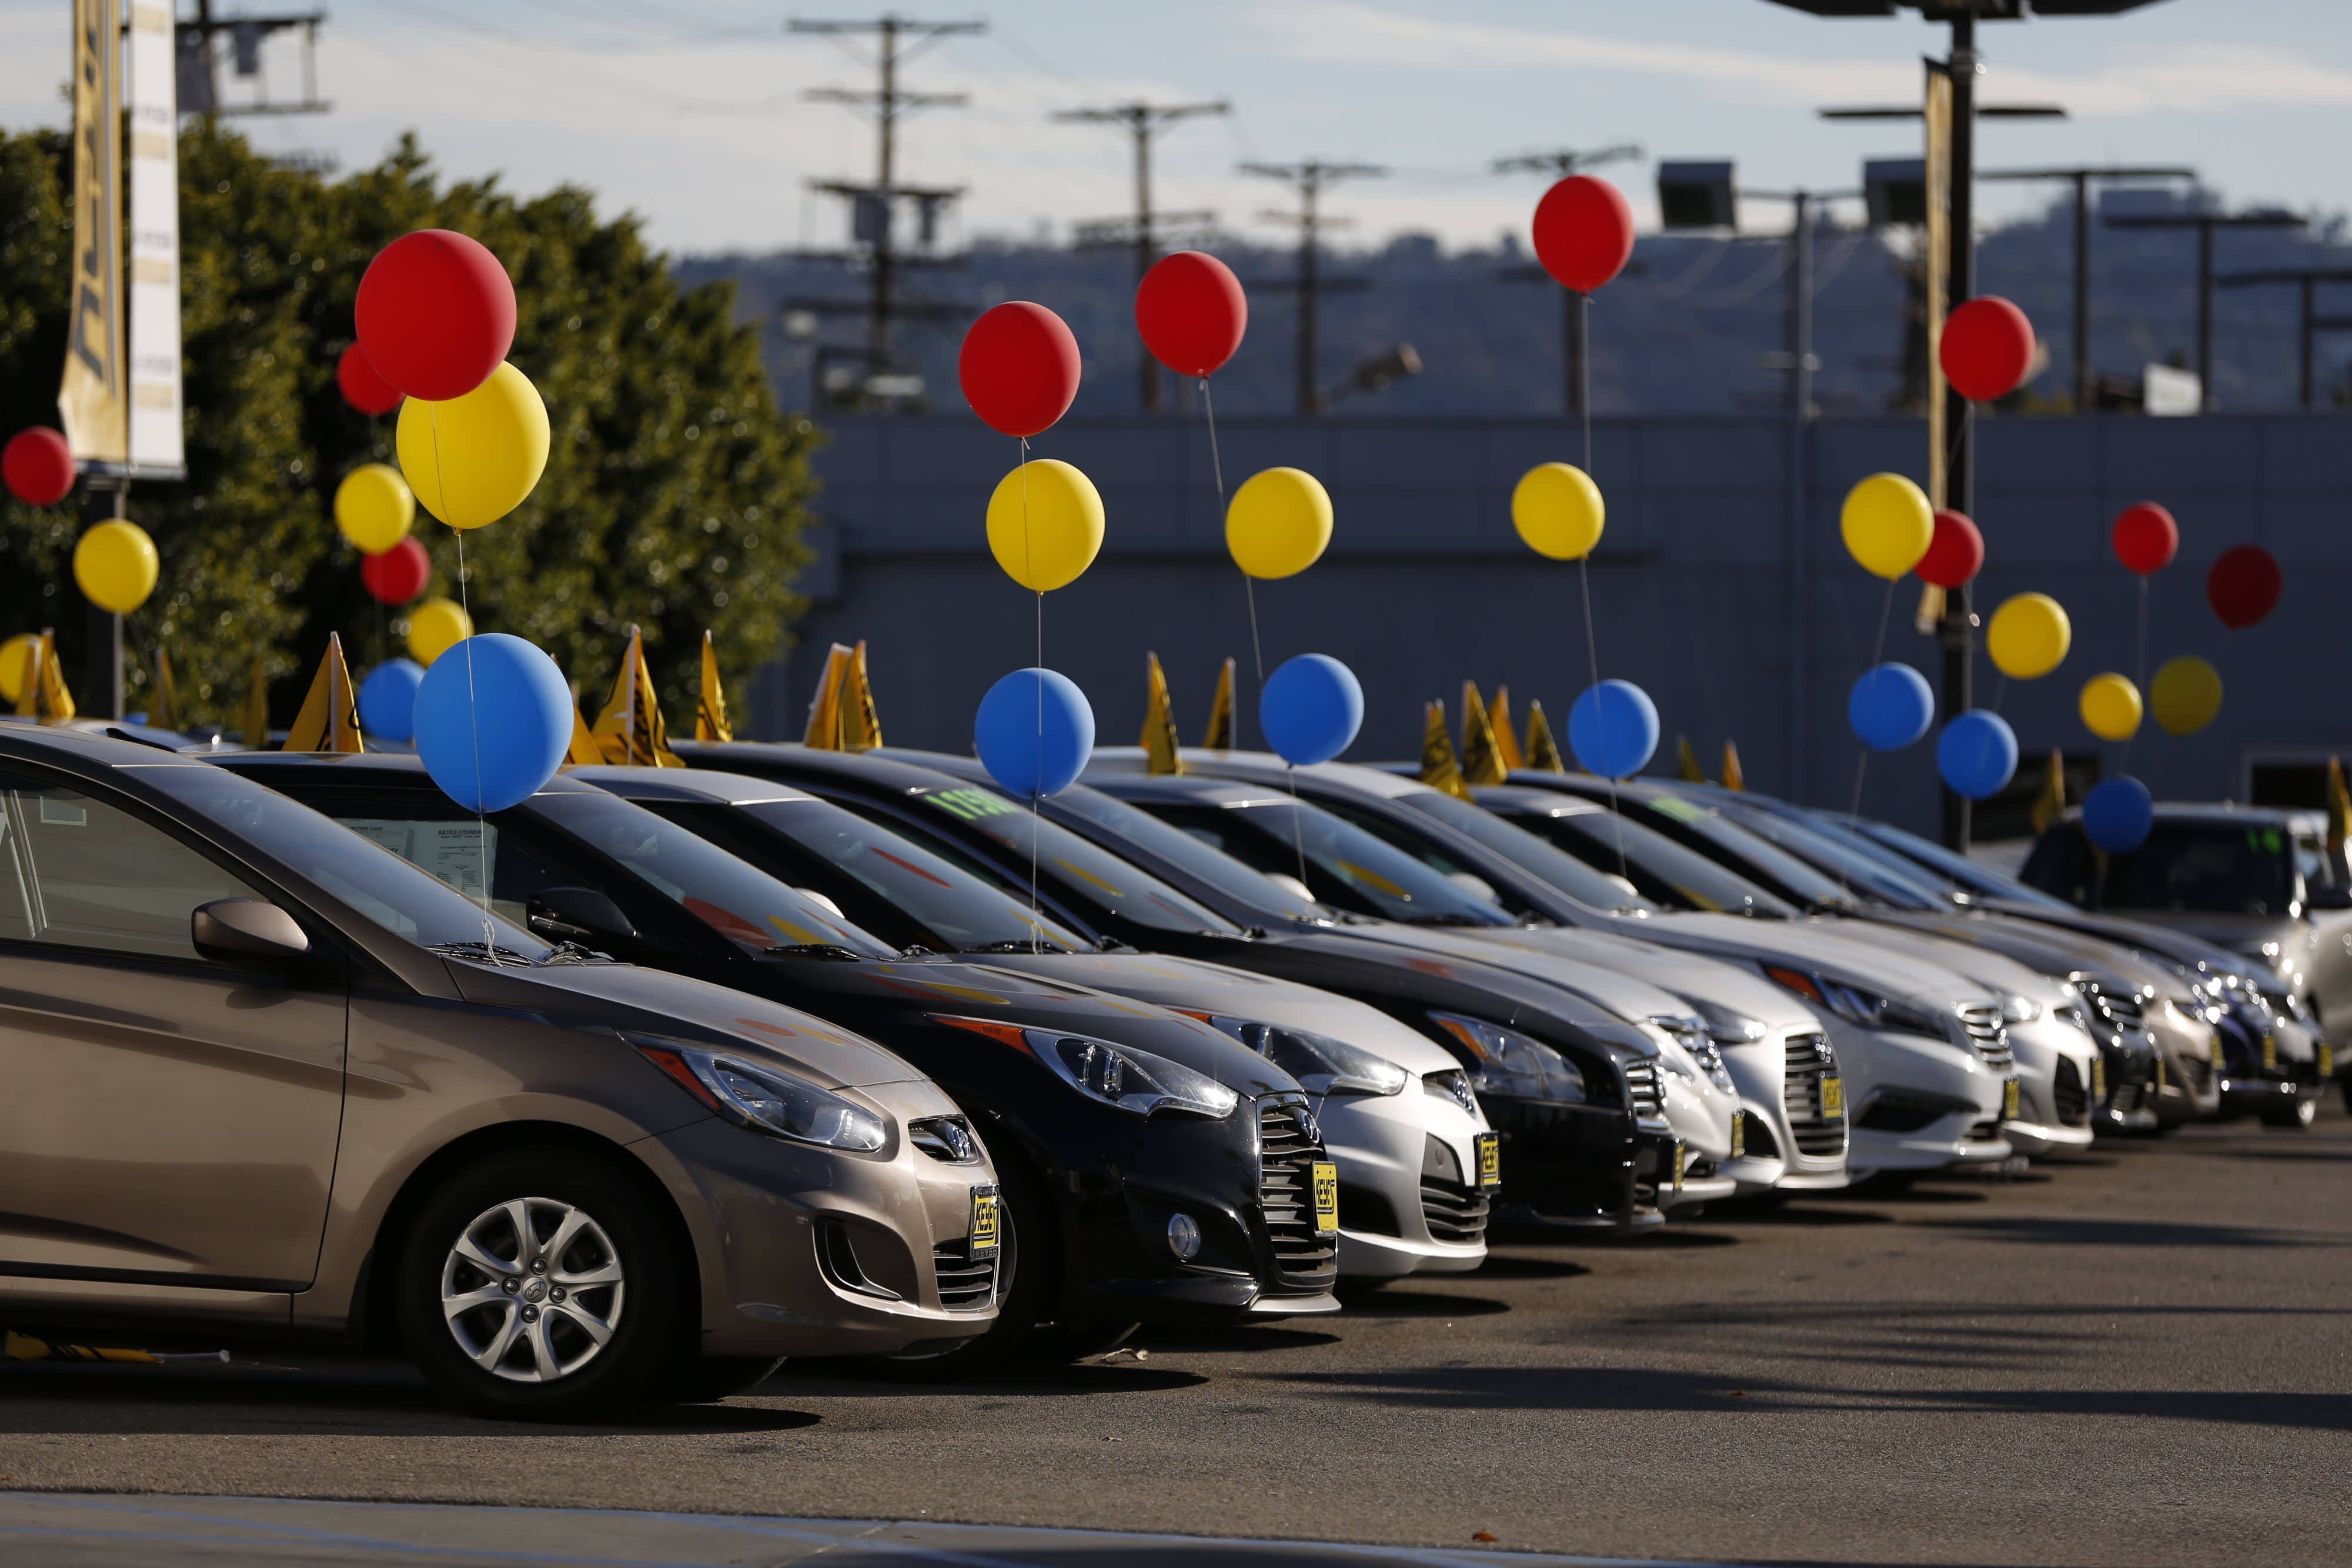 Vehicles sit on display for sale on the lot of the dealership in Los Angeles, California.